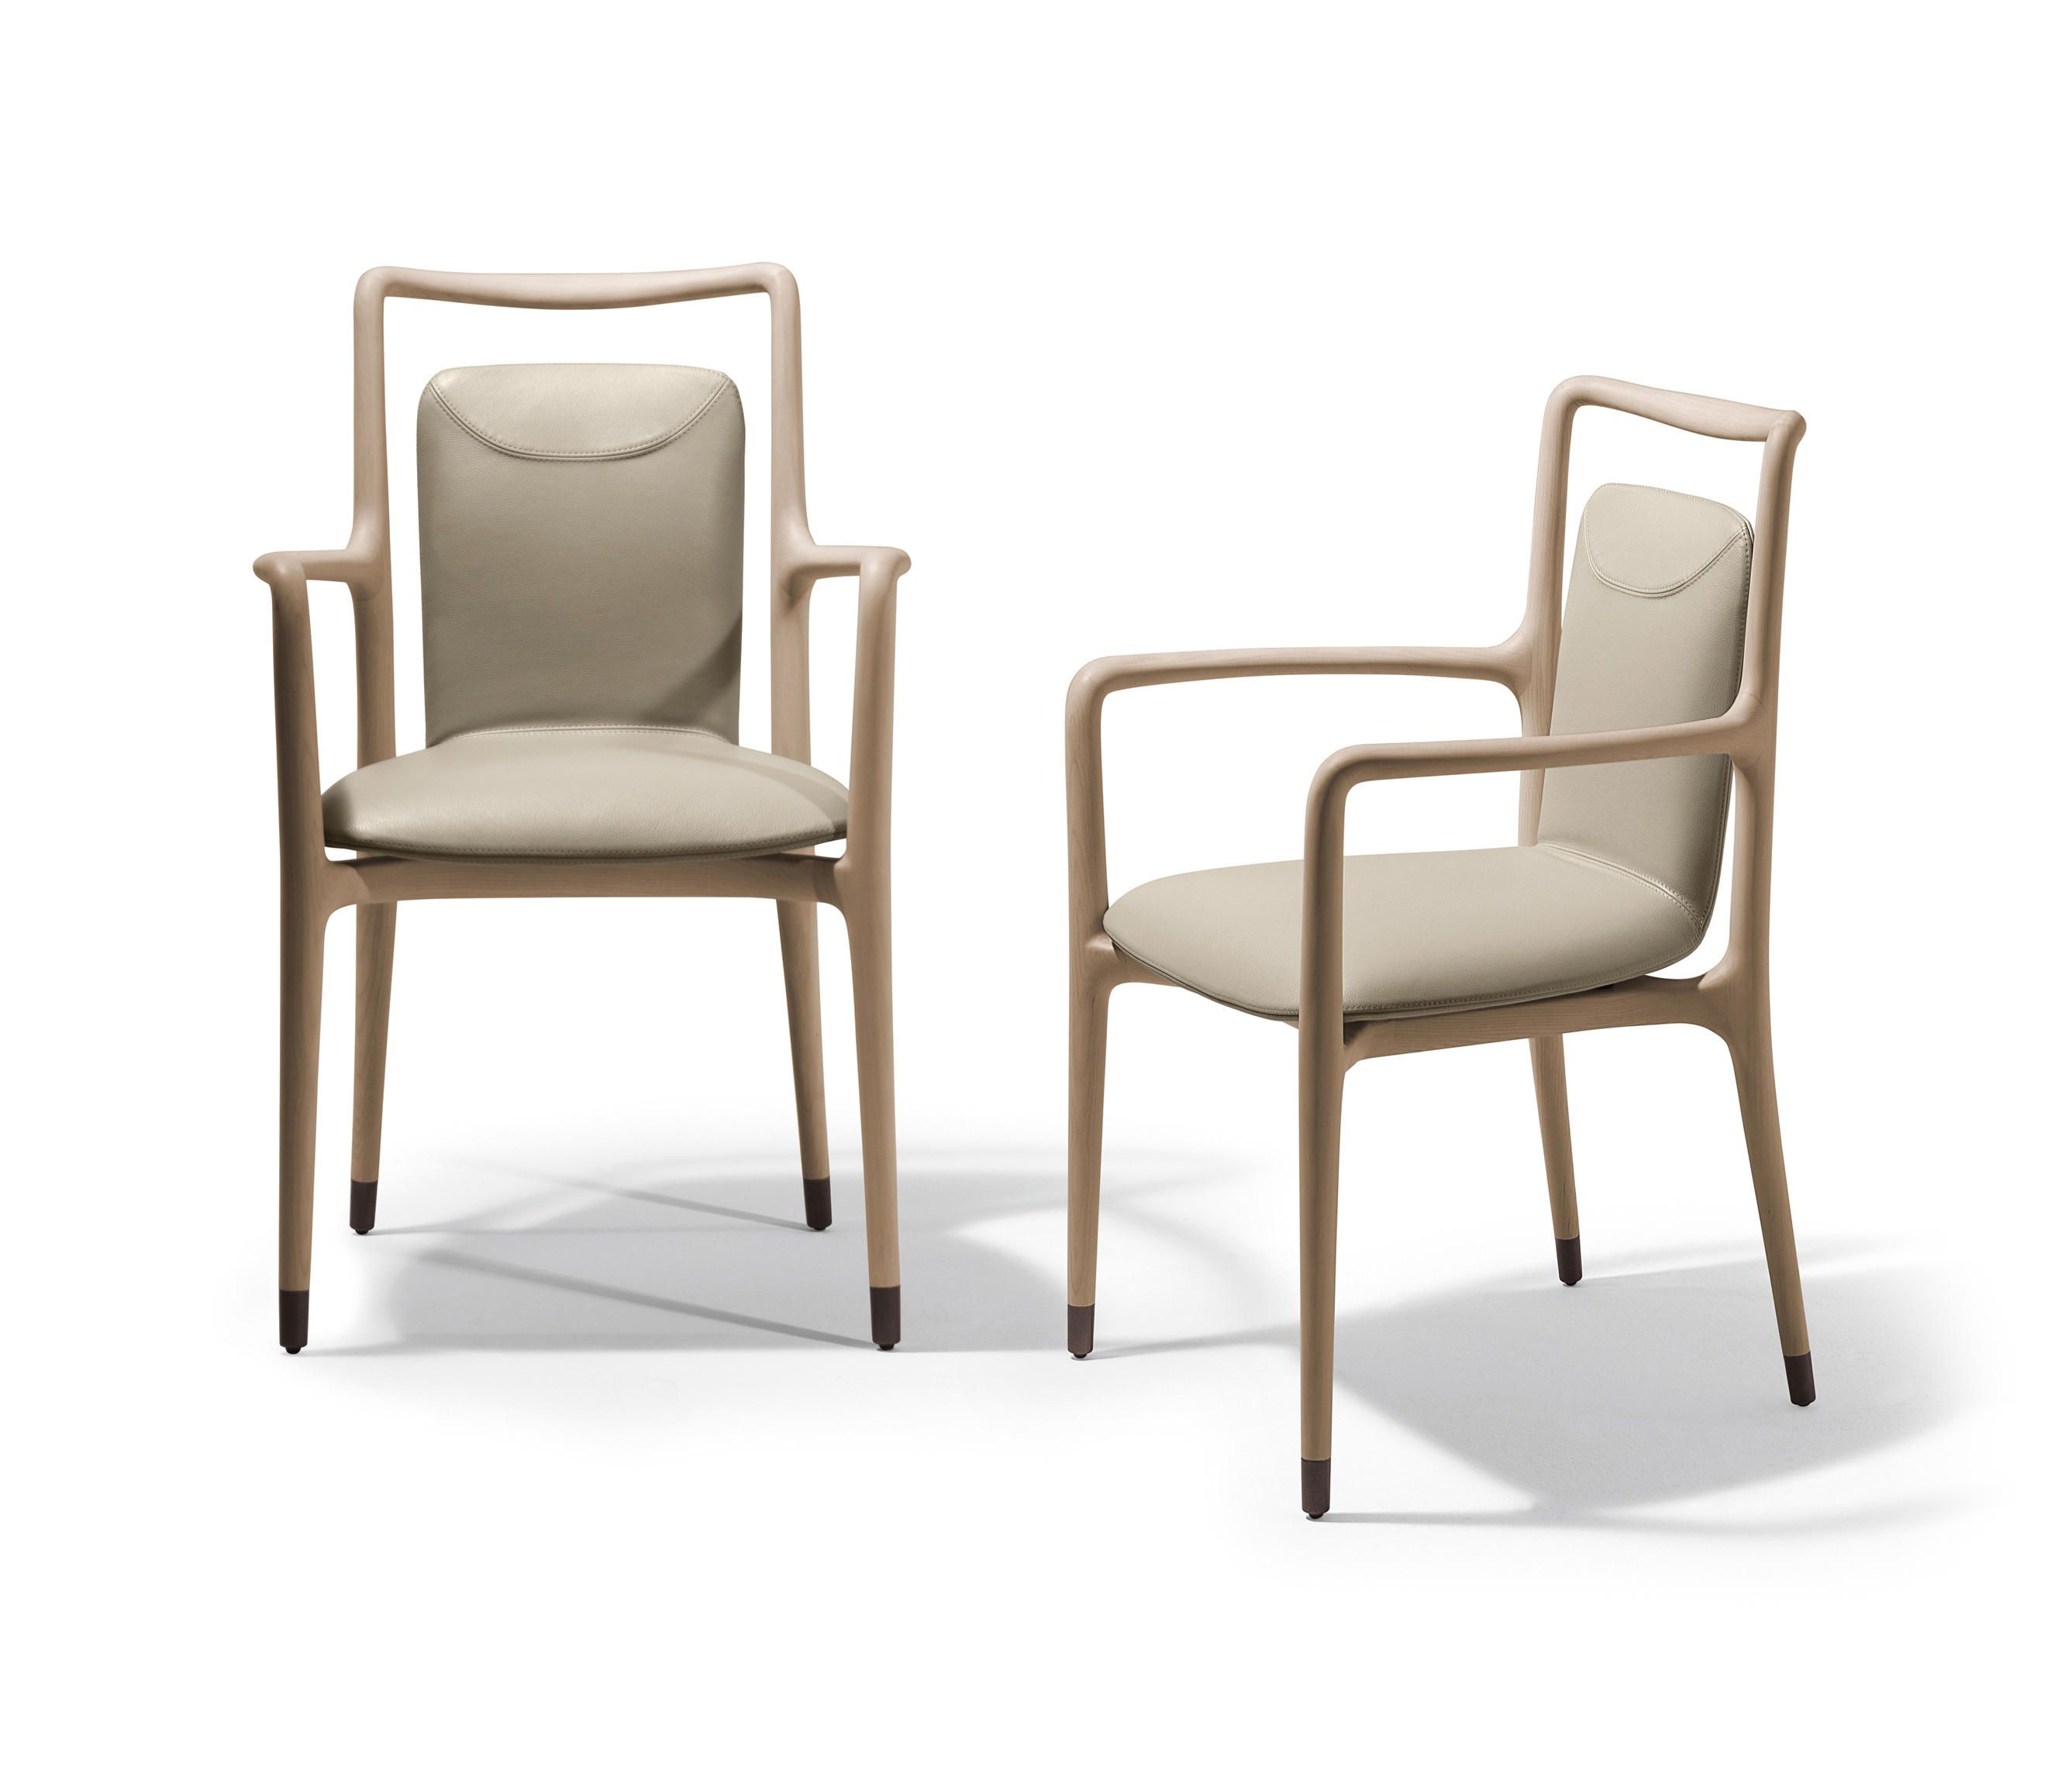 All about Ibla Chair by on Architonic. Find